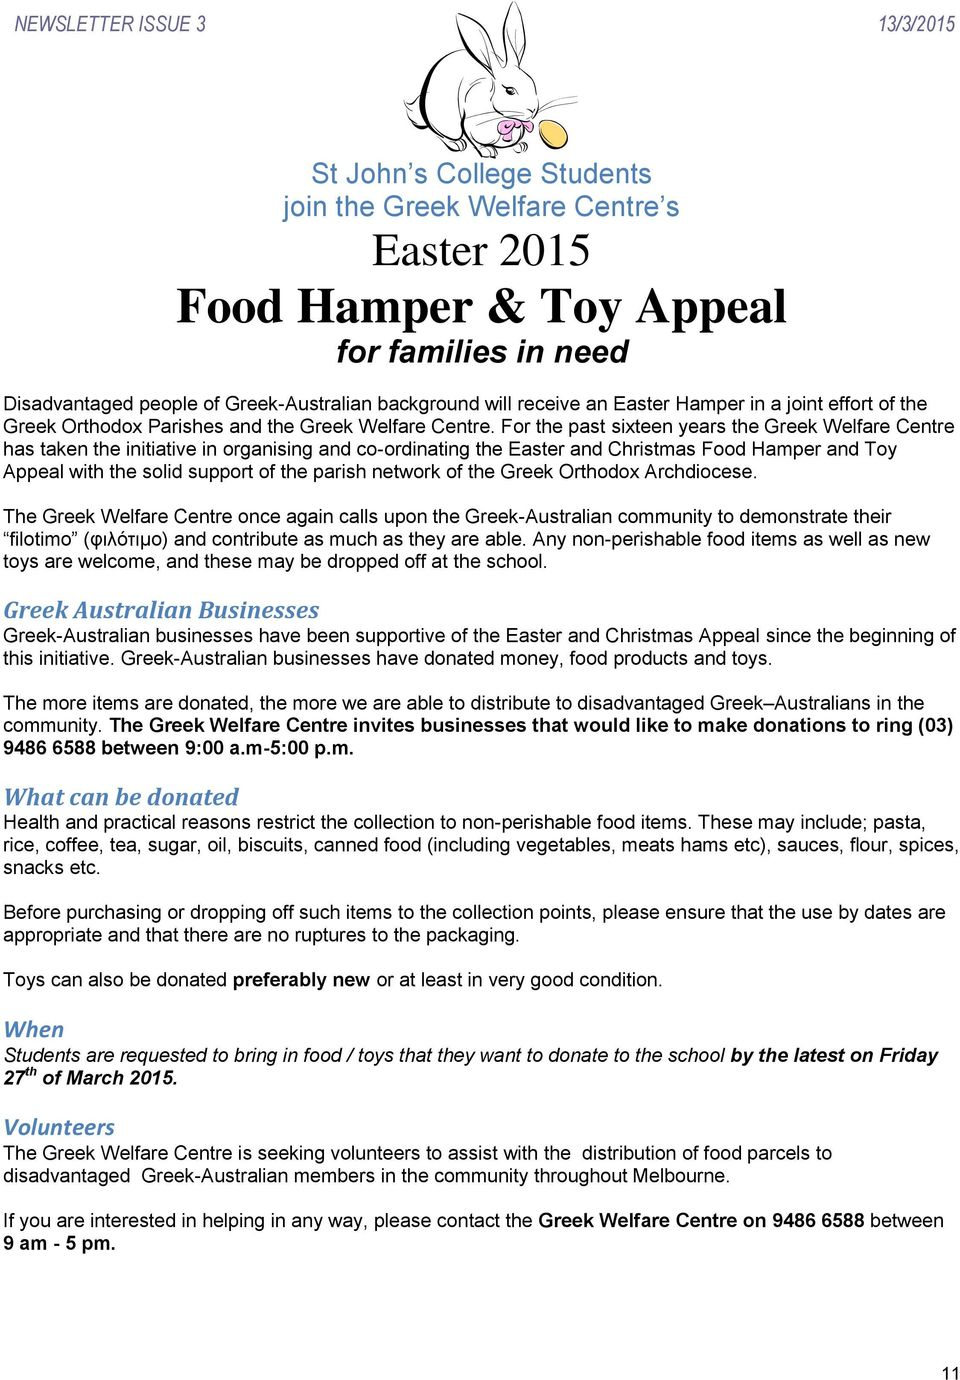 For the past sixteen years the Greek Welfare Centre has taken the initiative in organising and co-ordinating the Easter and Christmas Food Hamper and Toy Appeal with the solid support of the parish